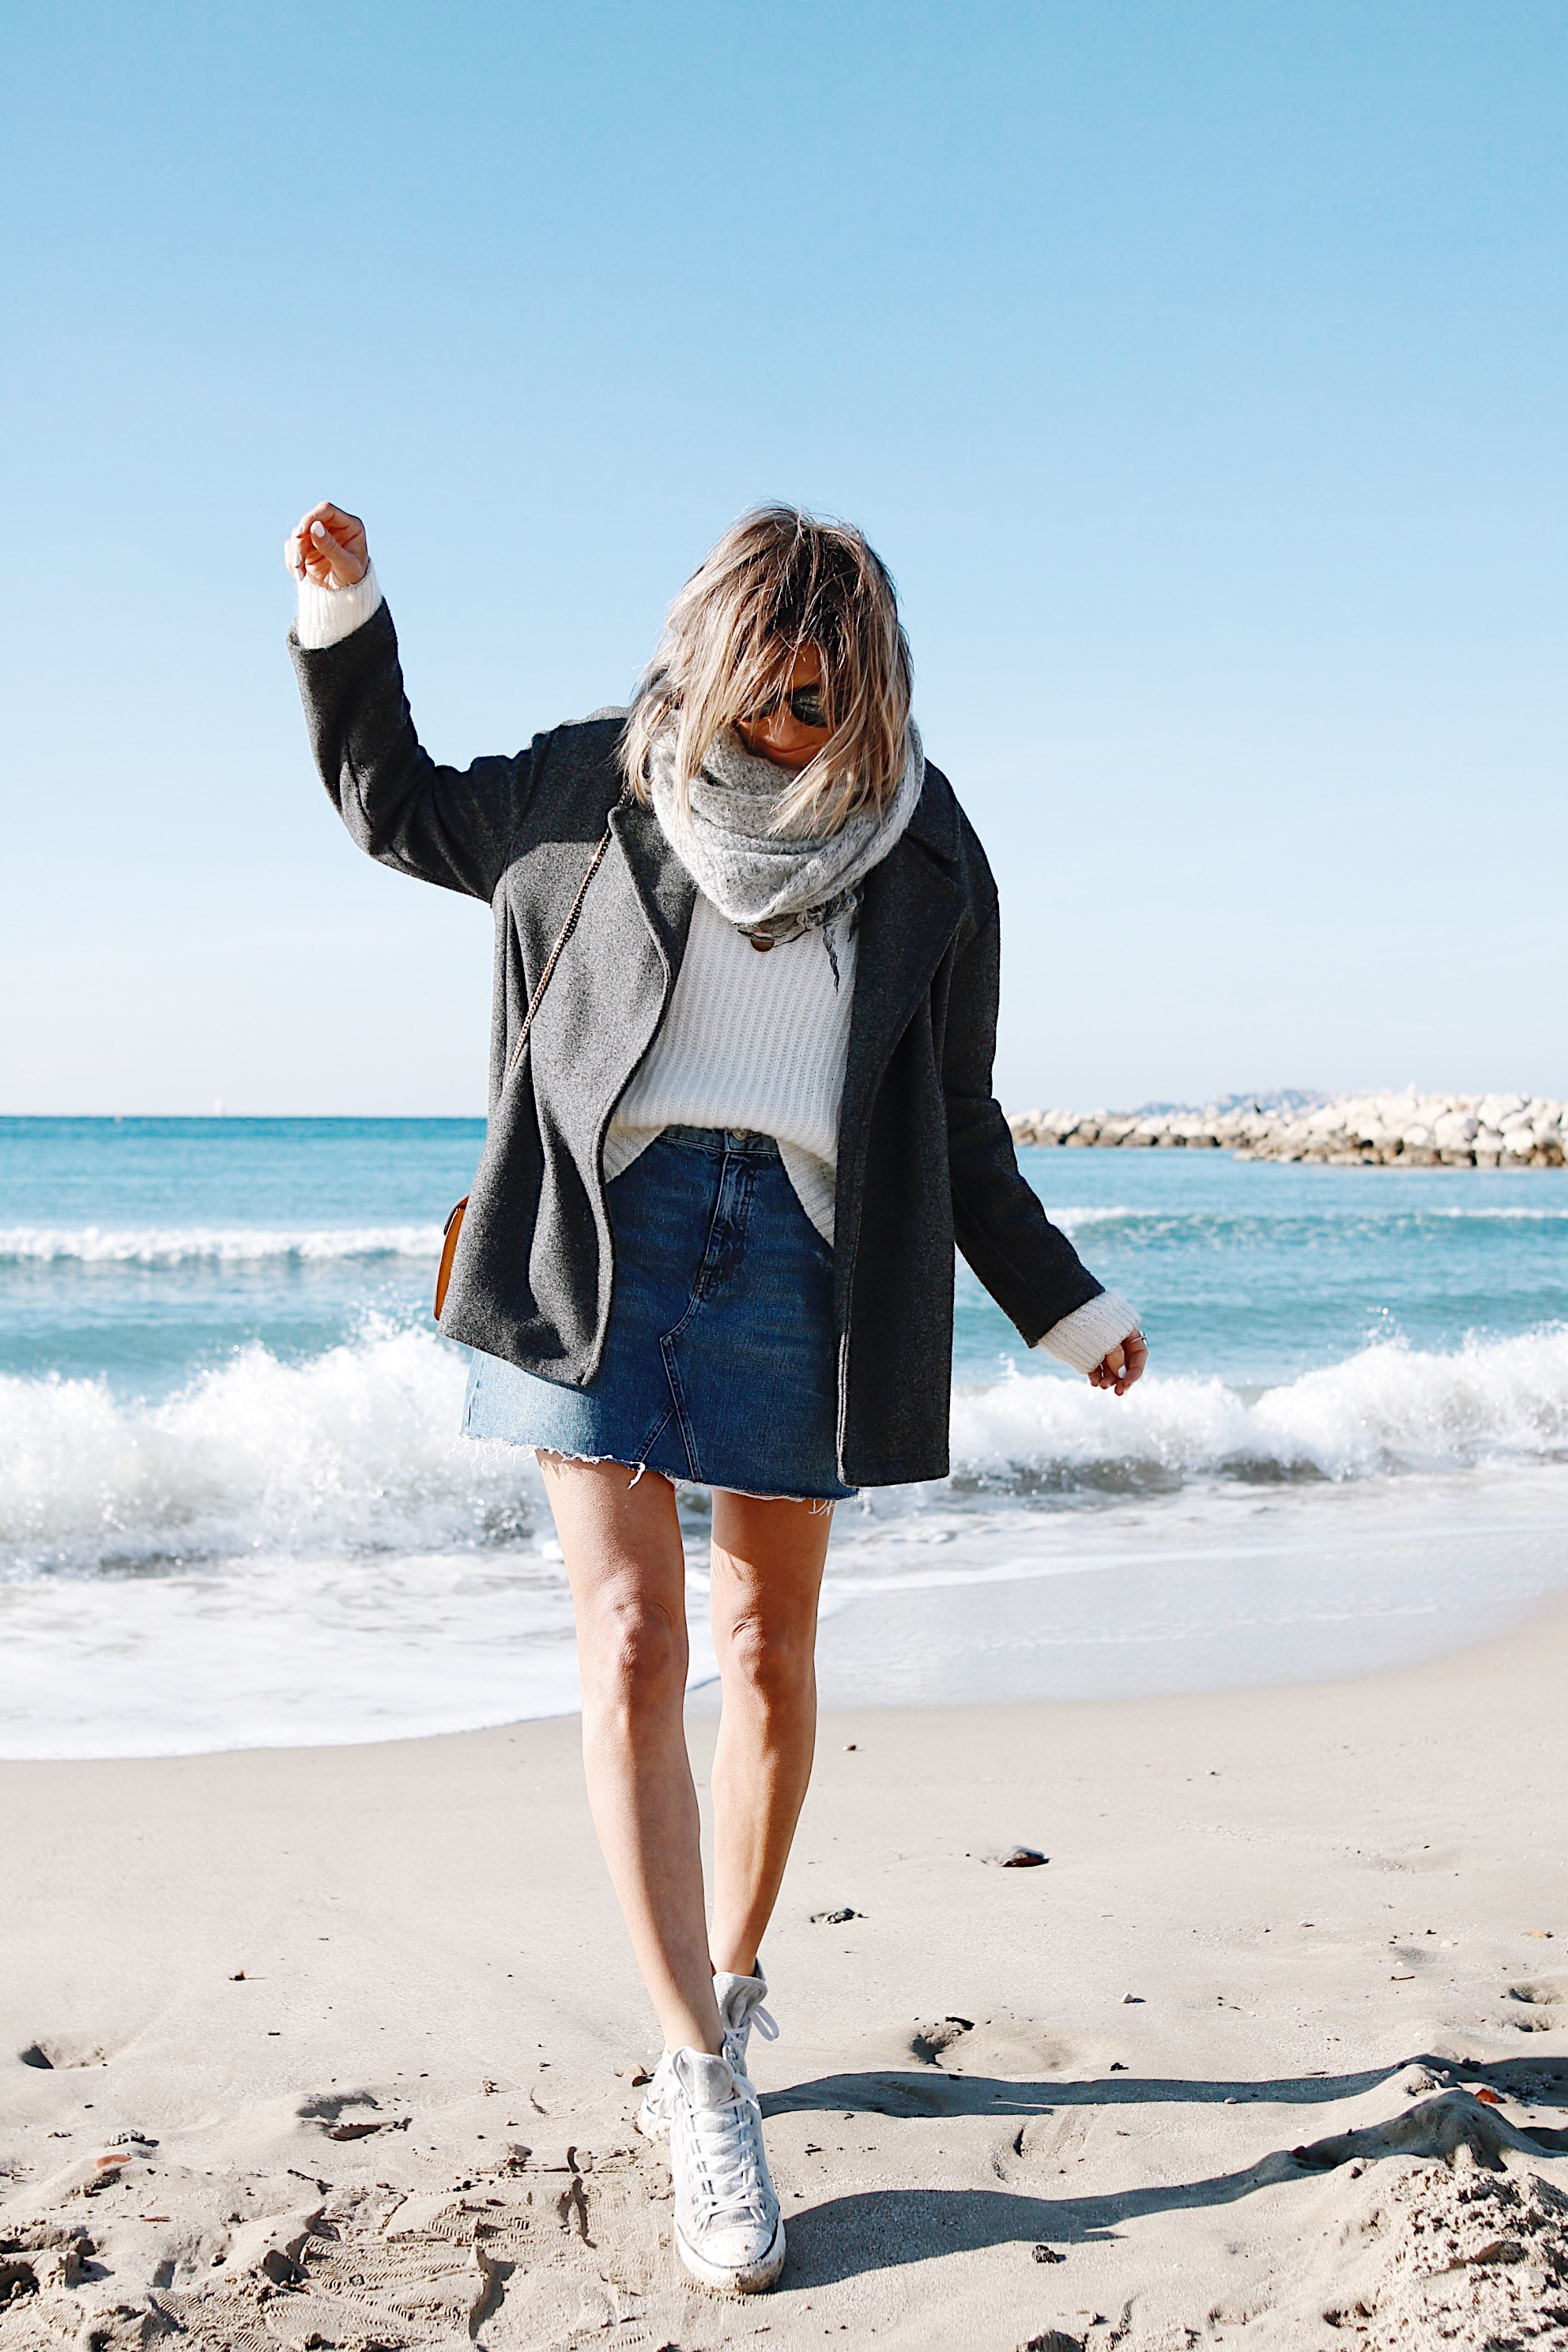 BACK TO THE BEACH - jupe en jeans et pull en laine, casual outfit, converse shoes